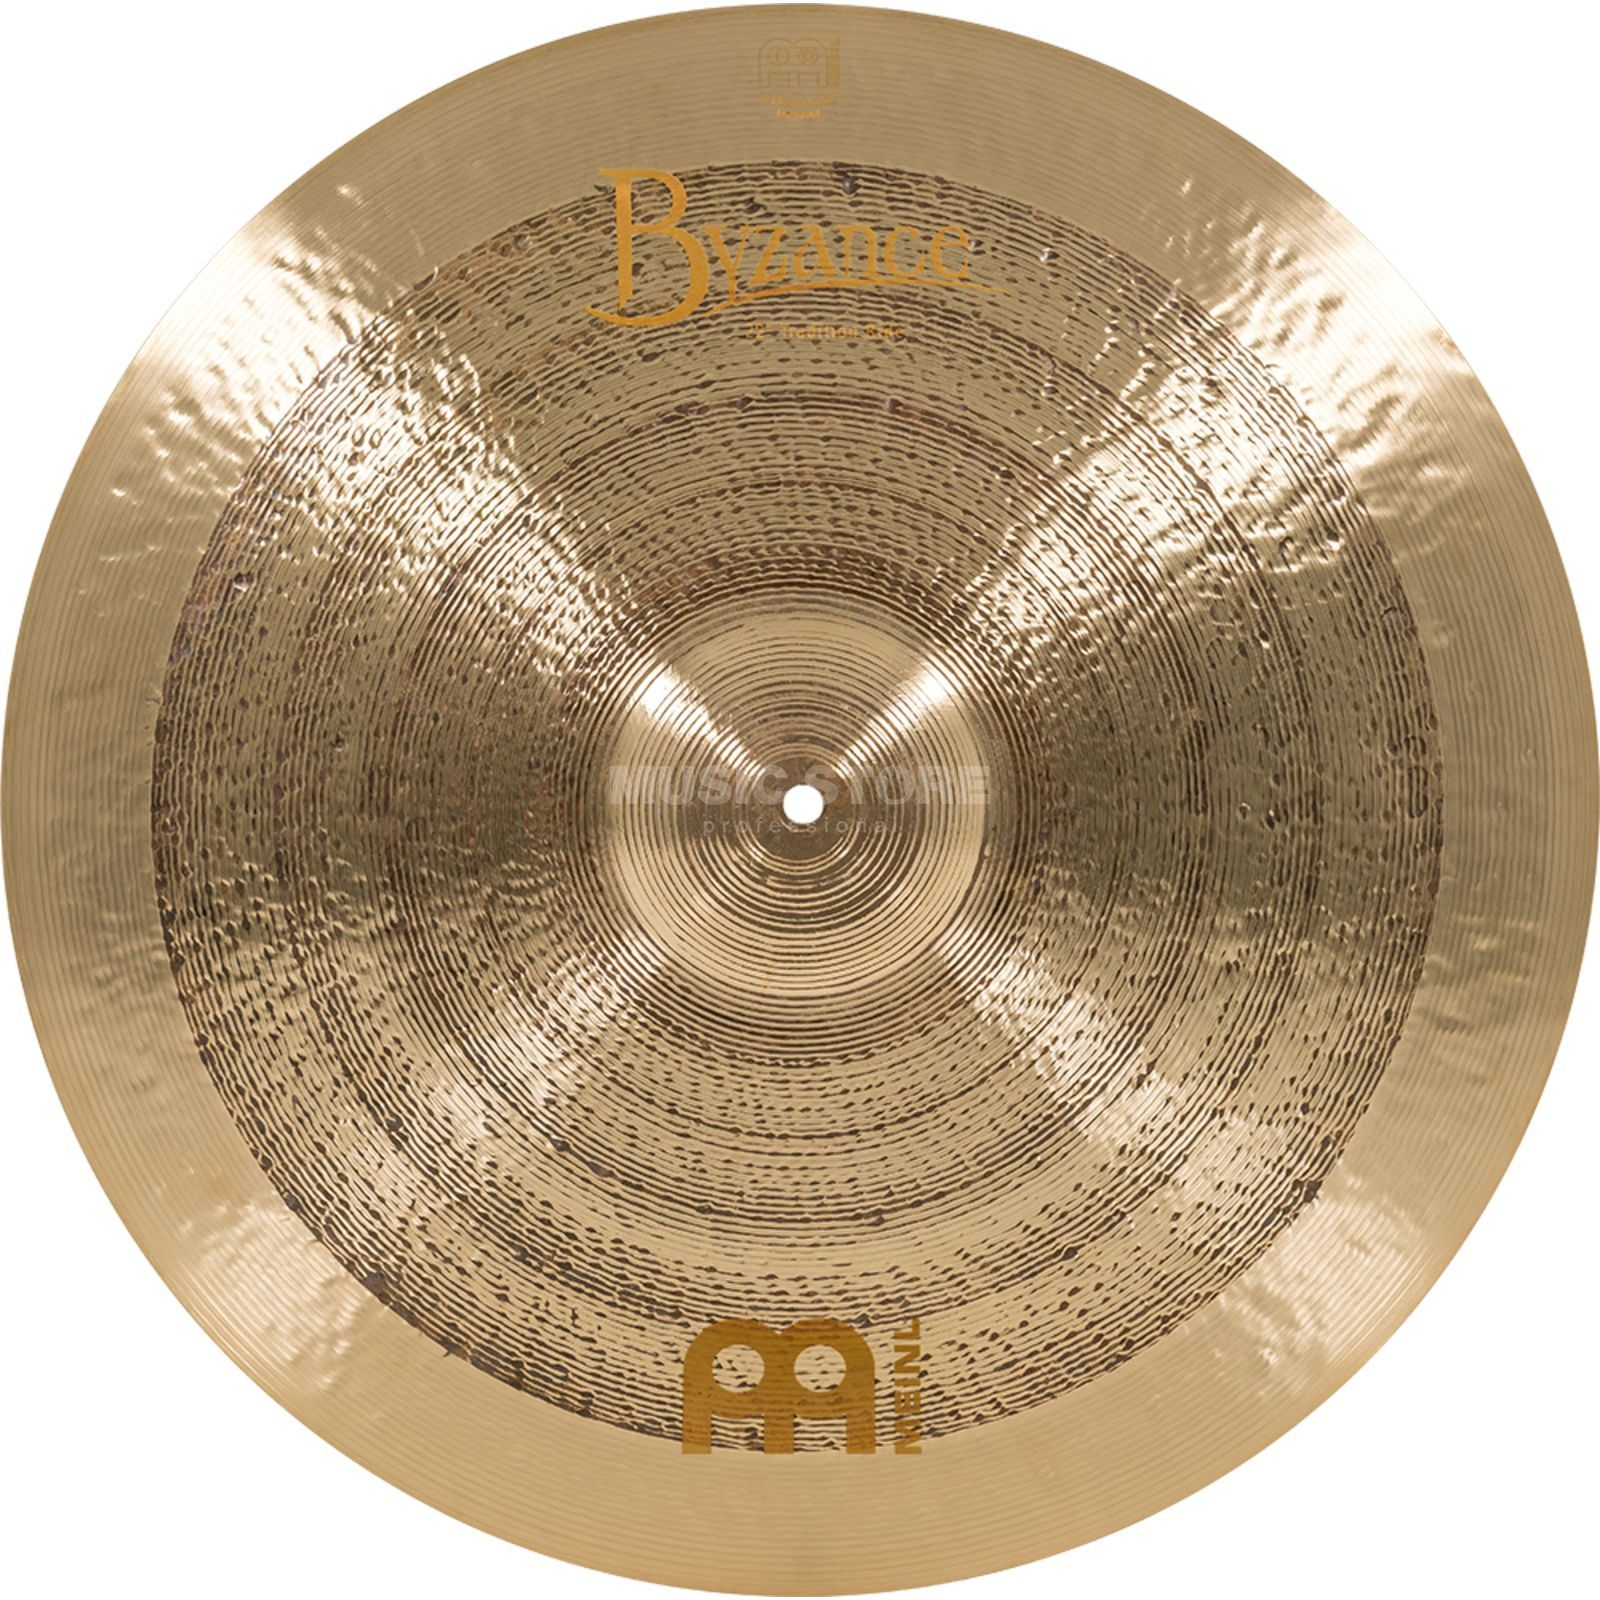 "Meinl Byzance Tradition Ride 22"", B22TRR, Jazz Finish Produktbillede"